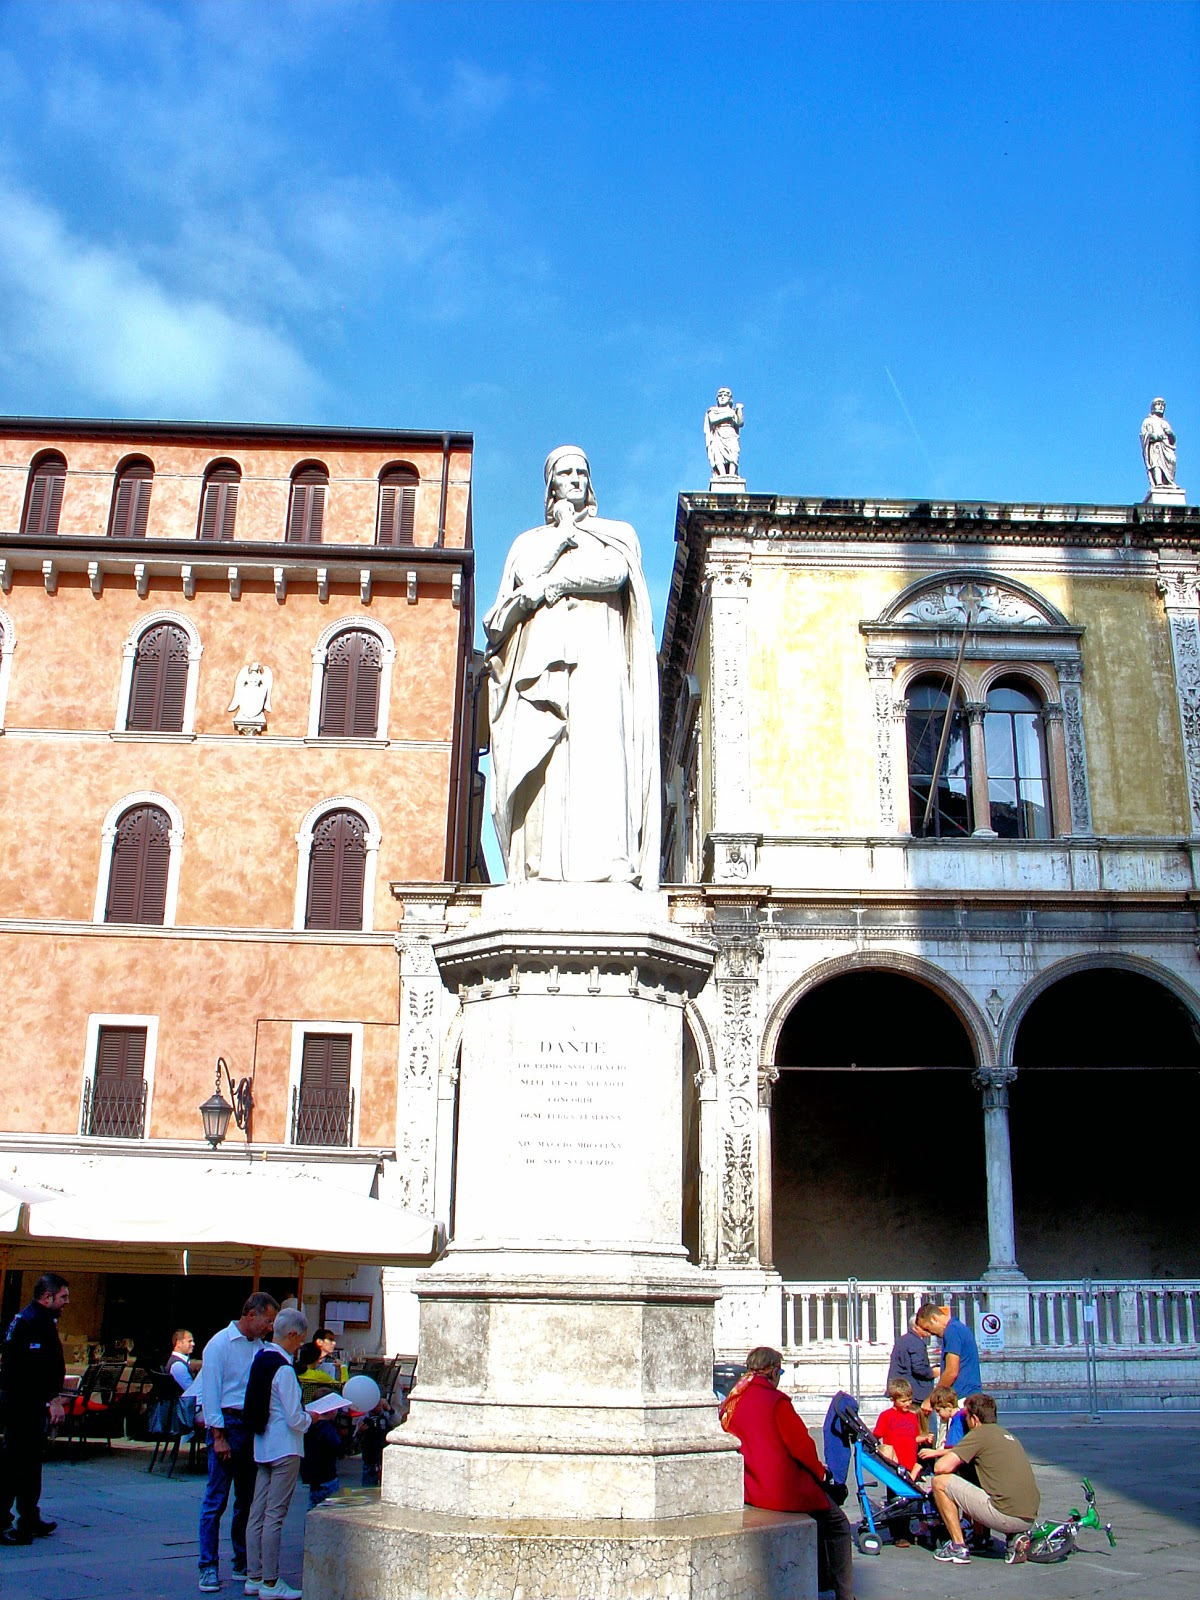 Dante looking pensive in the Piazza dei Signoria (Lords Square).